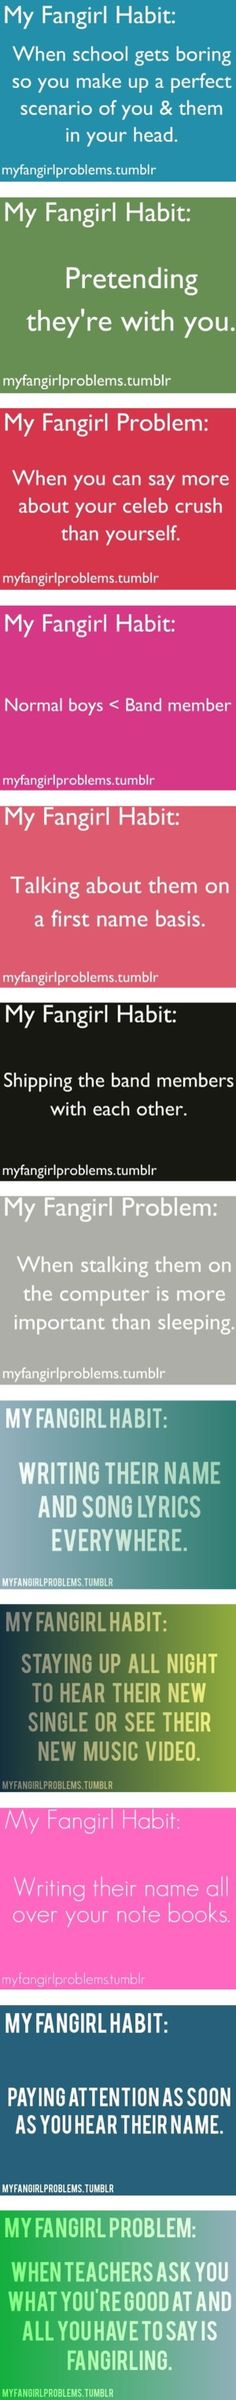 """My fangirl life everybody"" by never-say-never-bby ❤ liked on Polyvore"